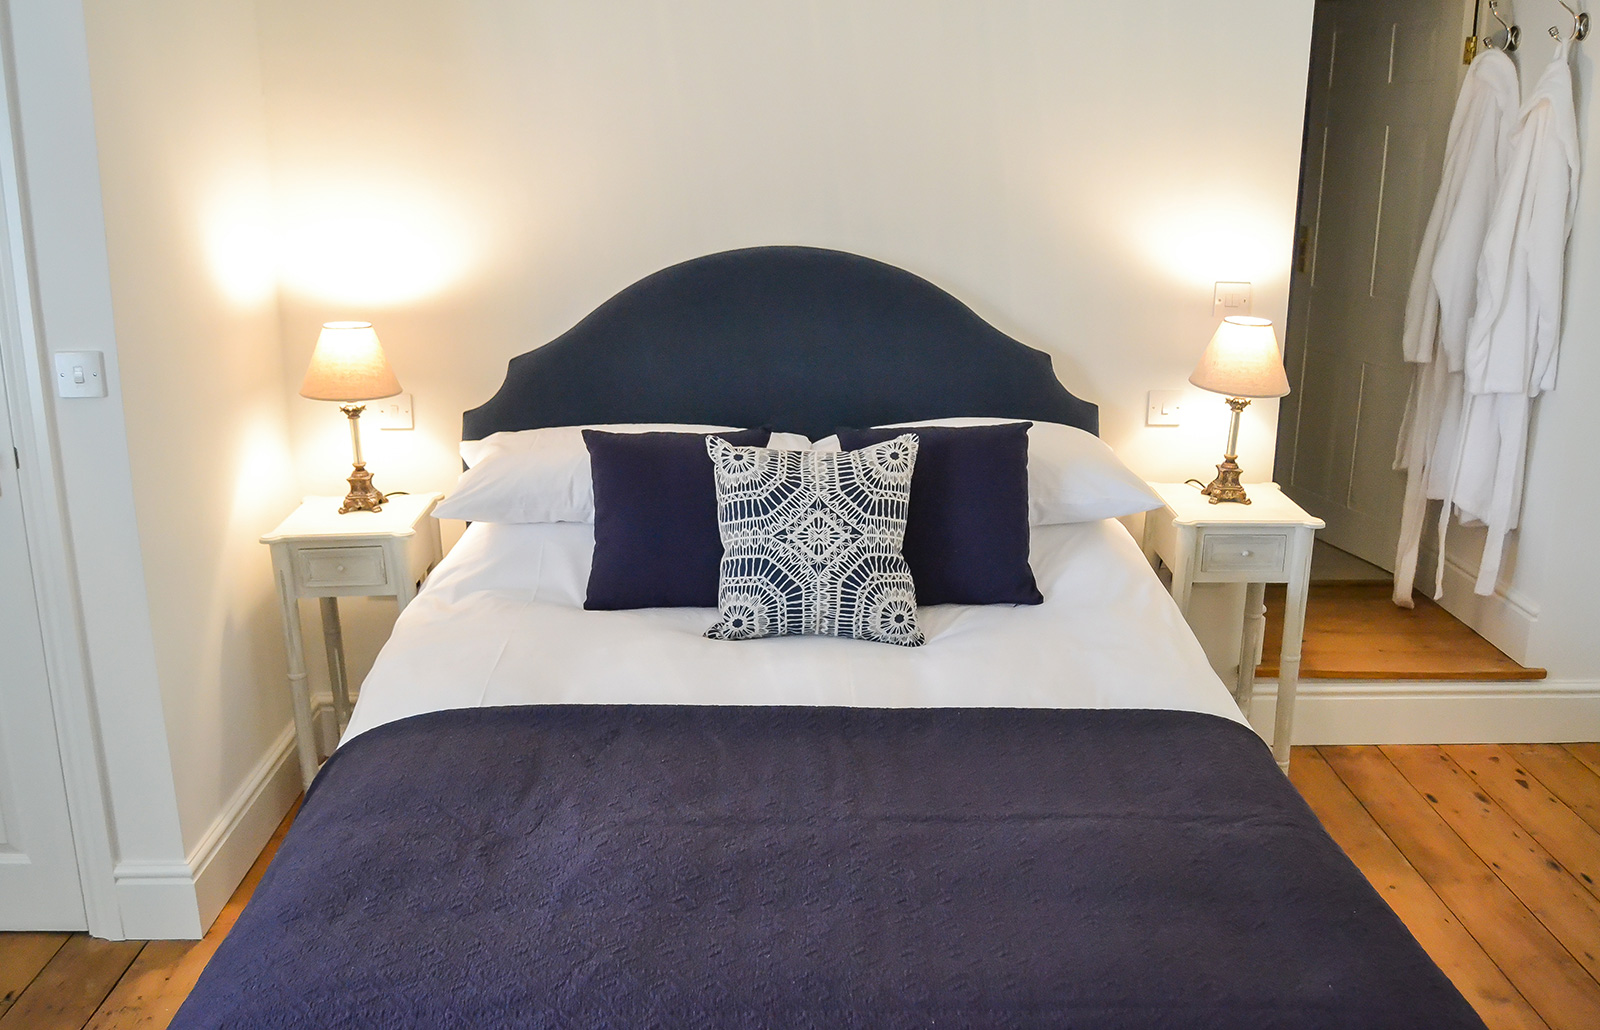 Feathers-Room-Bed-Breakfast-Bang-in-Wells-Norfolk